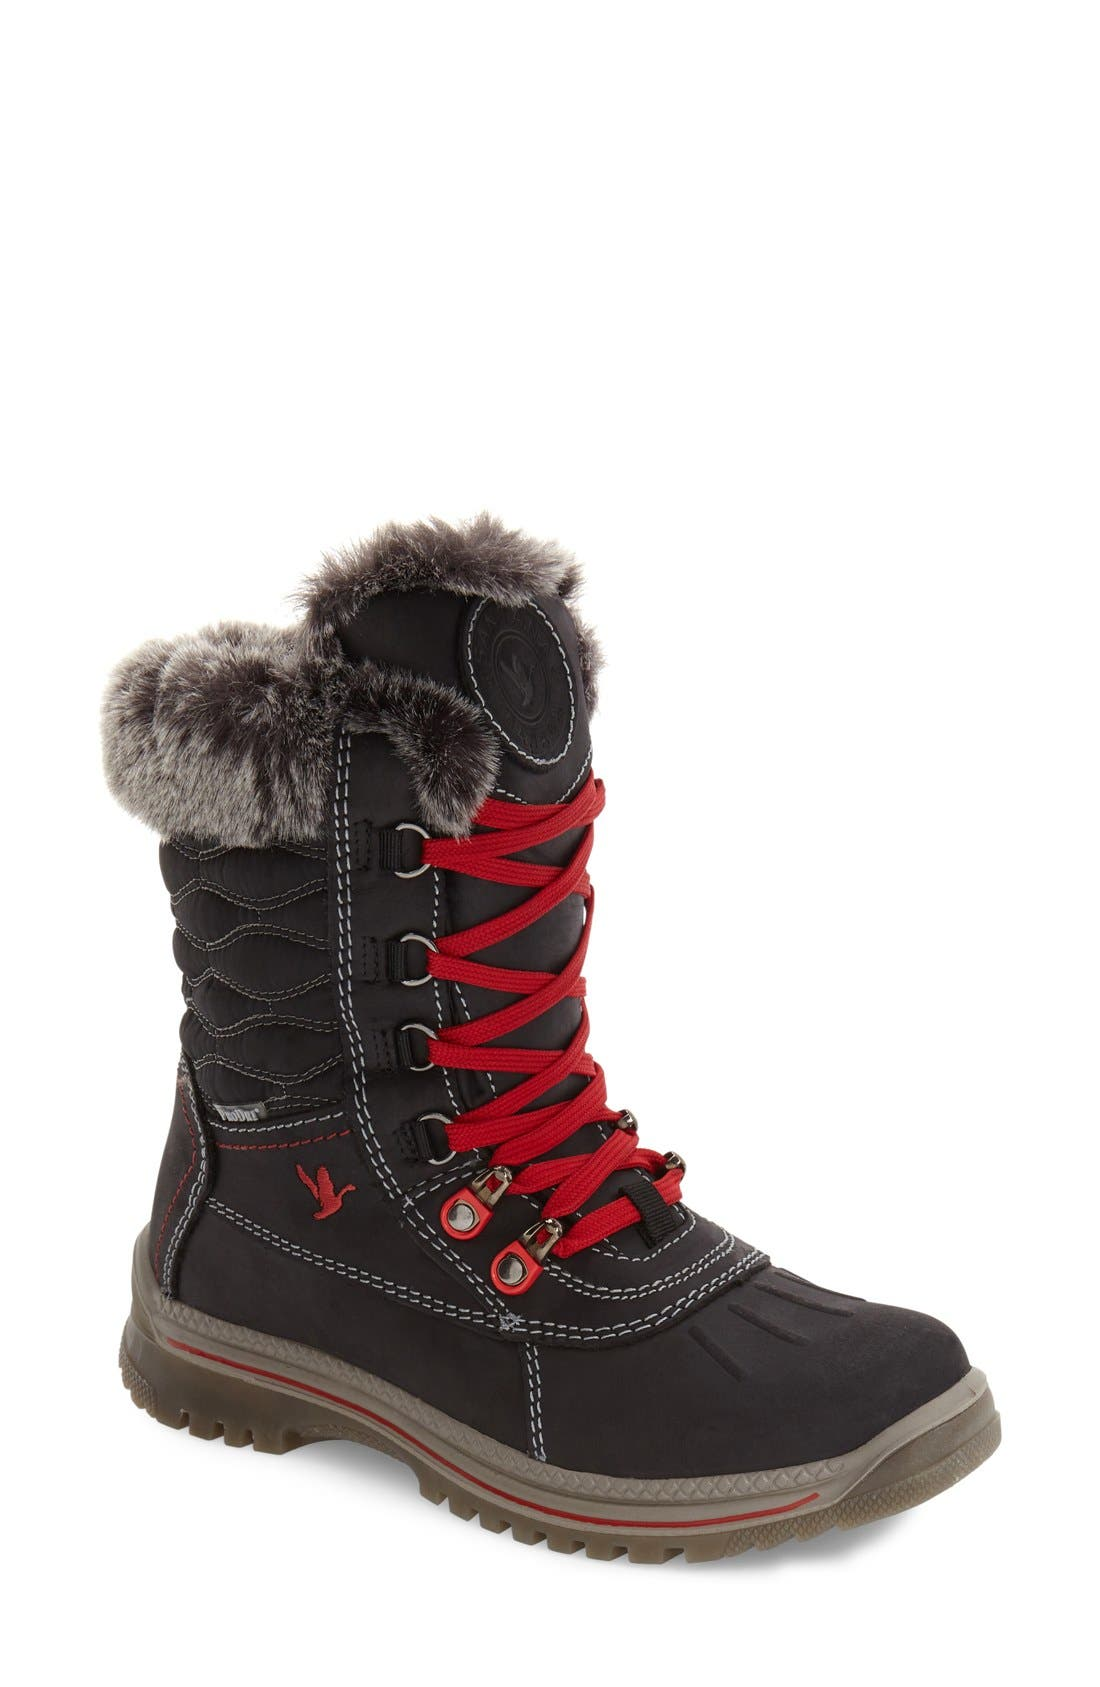 SANTANA CANADA 'Maldine' Waterproof Hiker Boot